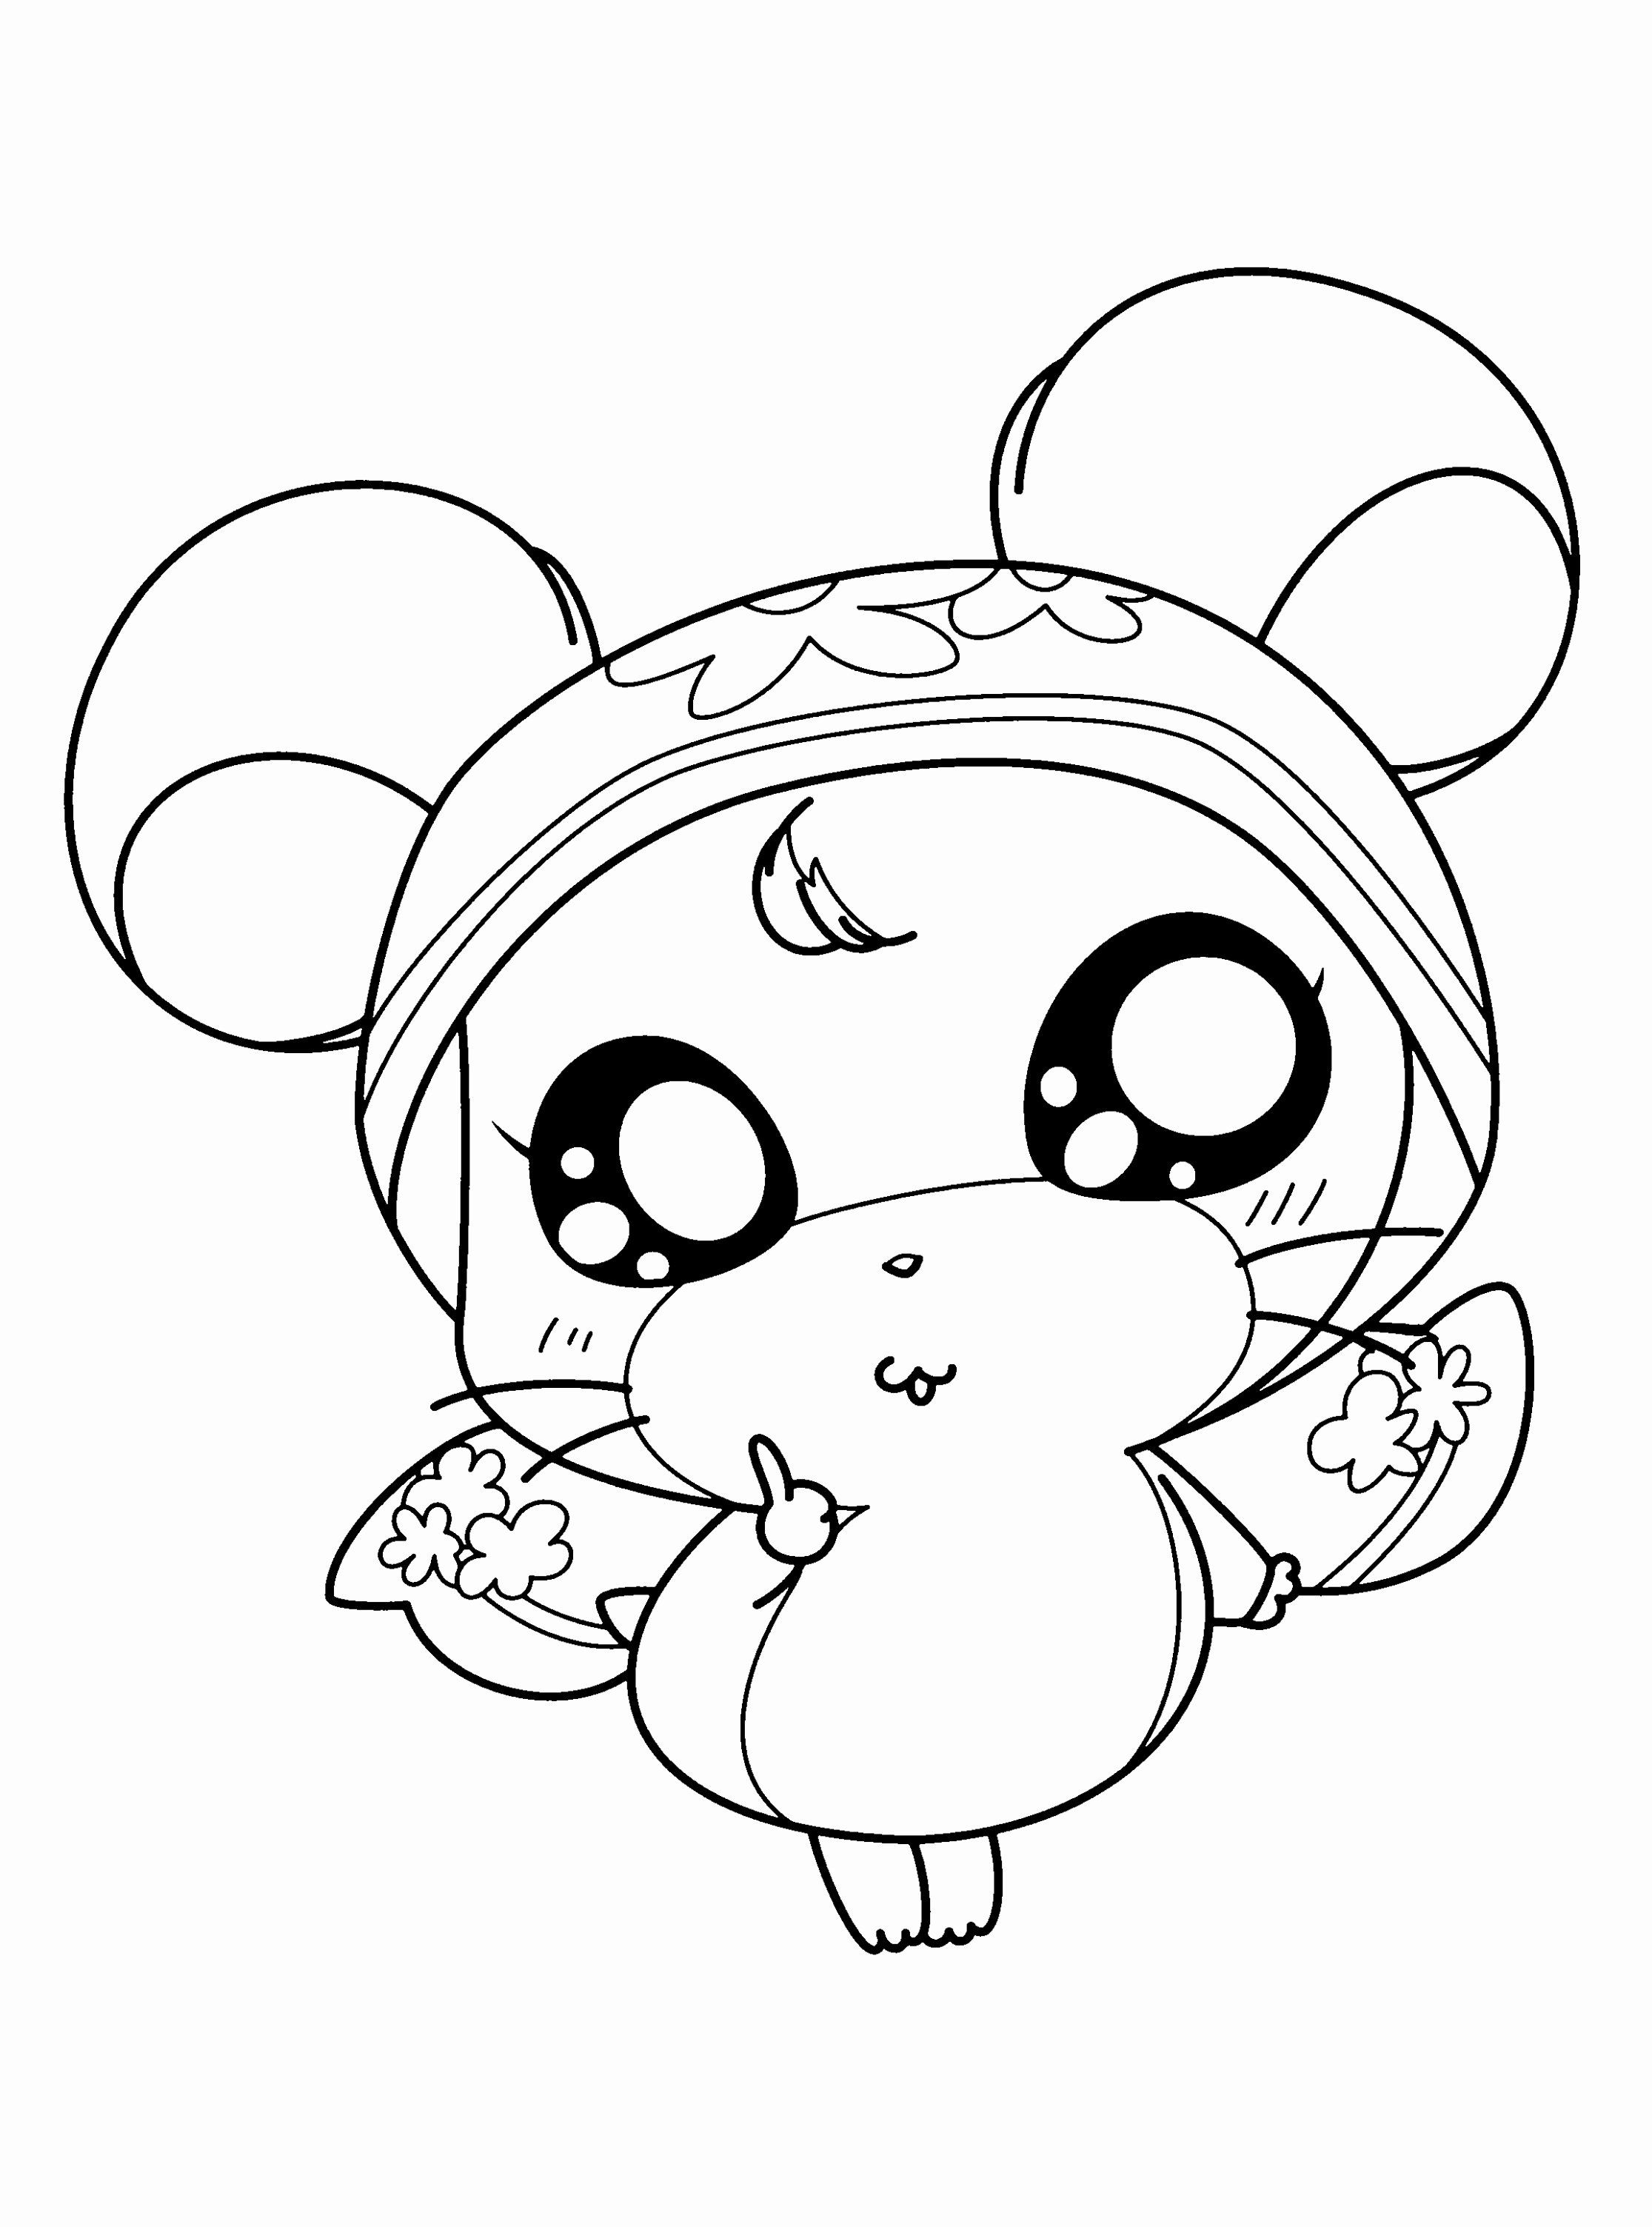 Sun And Moon Coloring Page Unique Coloring Book Ideas Marvelous Solar System Coloring Shee In 2020 Pokemon Coloring Pages Princess Coloring Pages Animal Coloring Pages